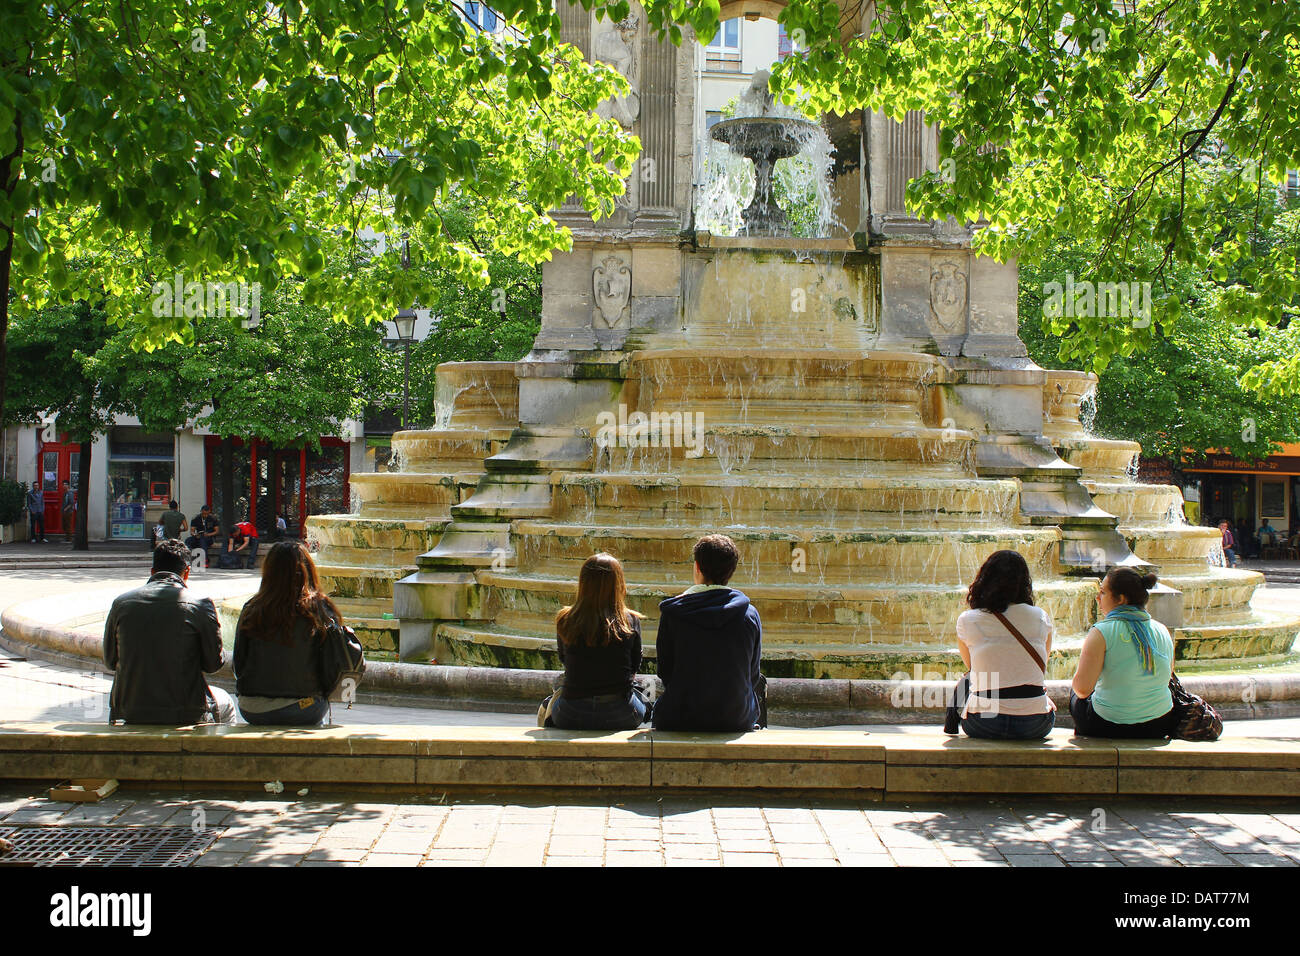 Celio Chatelet Chatelet District Photos Chatelet District Images Alamy